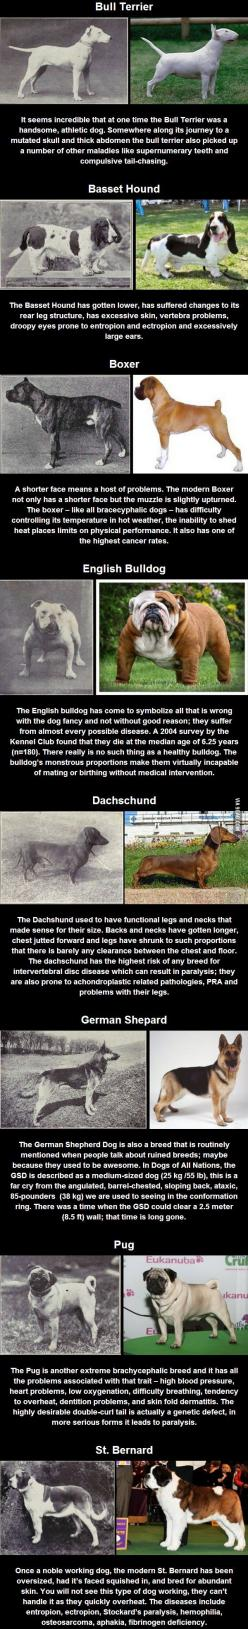 evolution of some breeds, this sheds some light on what people are doing to the breed: Dogs, Poor Dog, Selective Breeding, Mutt Dog, Dog Breeds, Animal, 100 Years